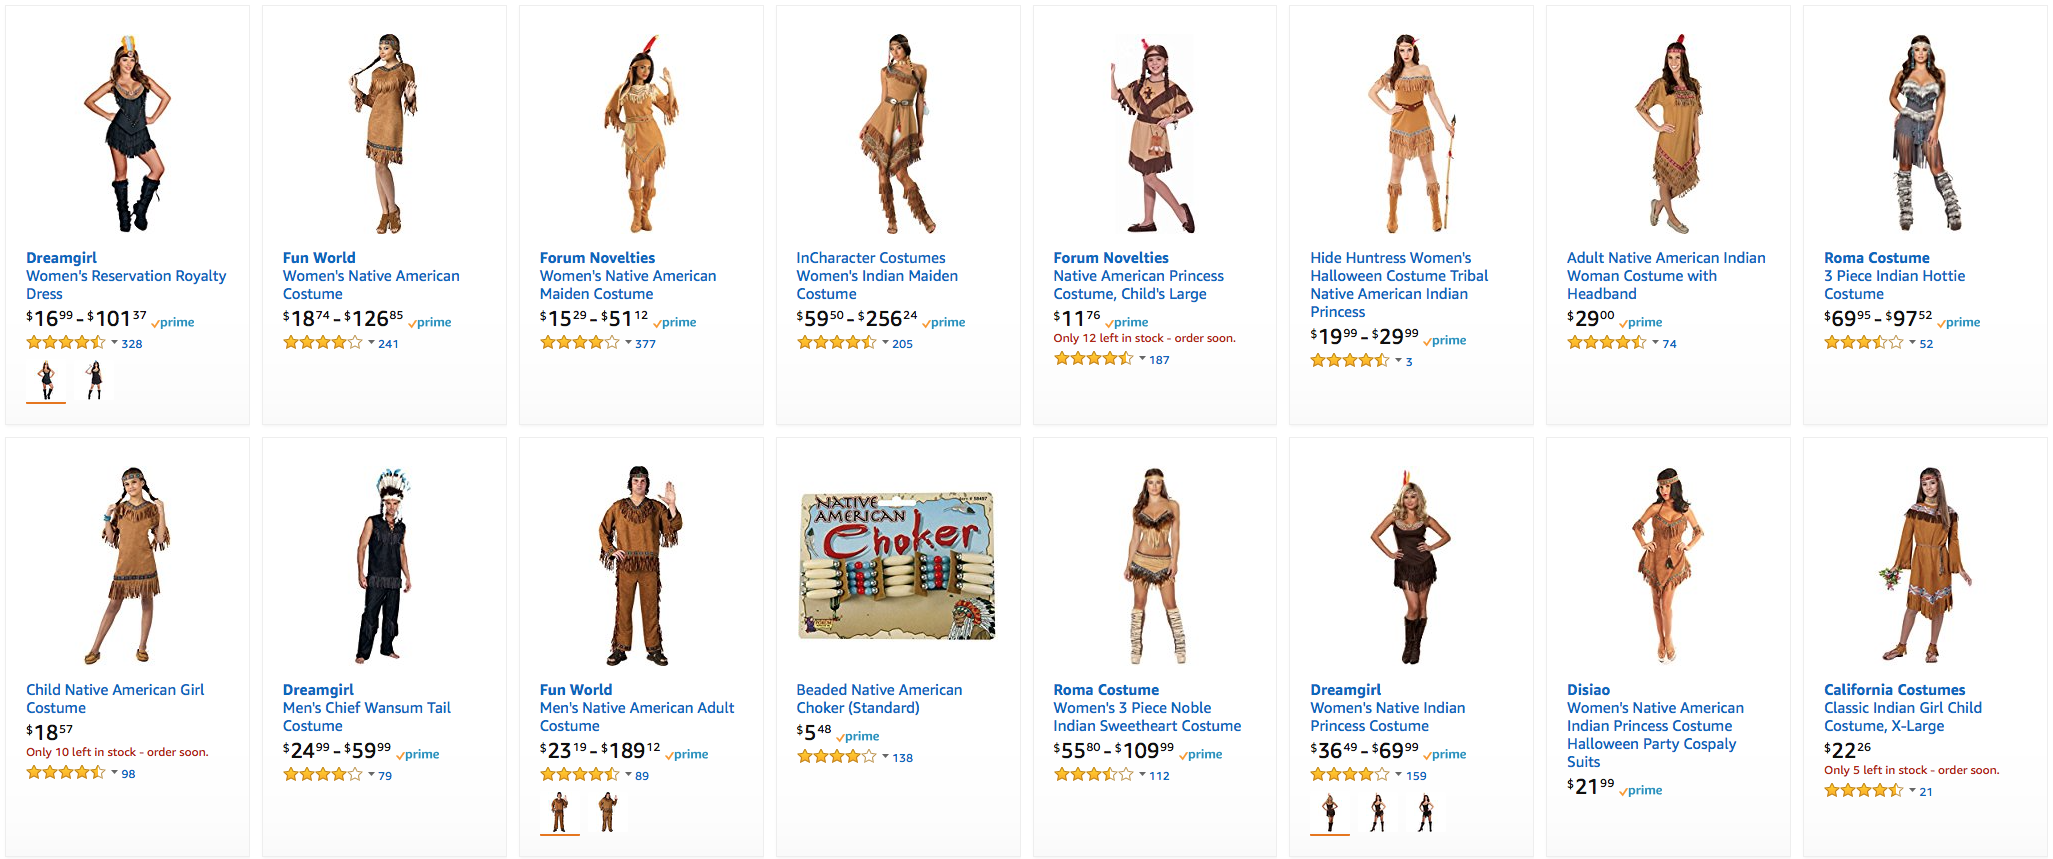 CULTURE COSTUMES - HARMLESS FUN OR CULTURAL APPROPRIATION?